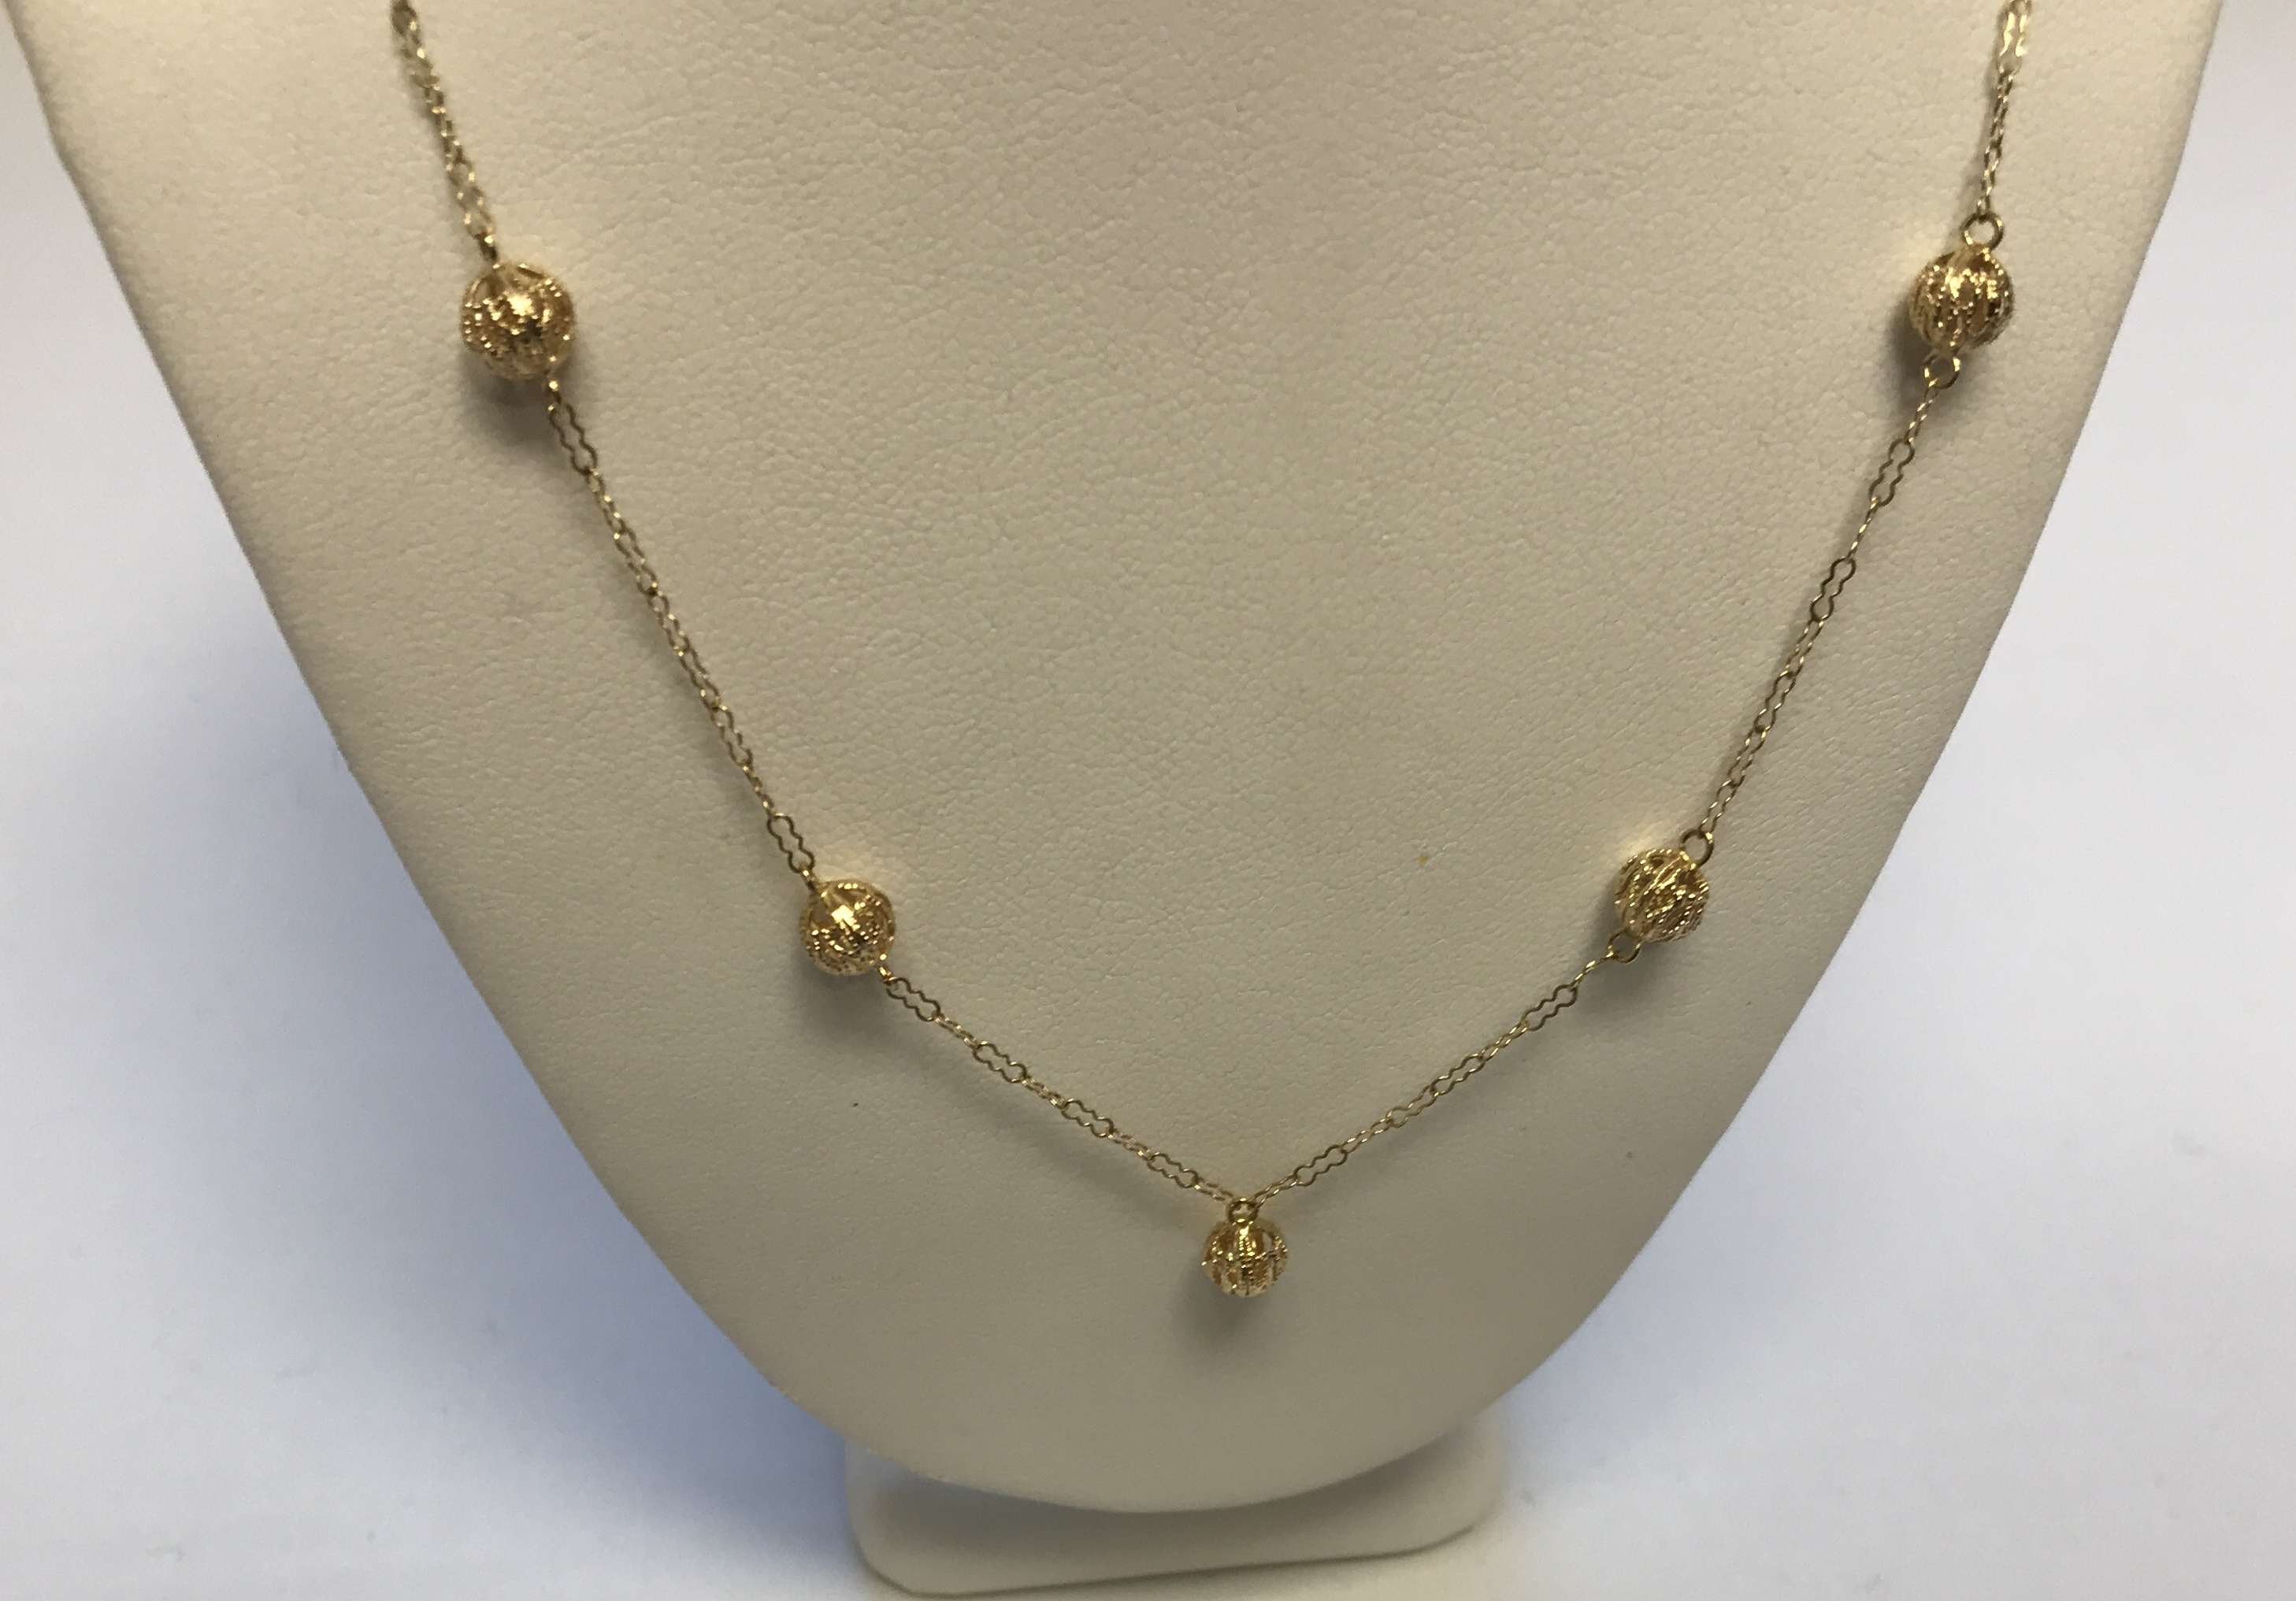 Hollow Gold Balls Link Necklace 10K Yellow Gold 1.7g